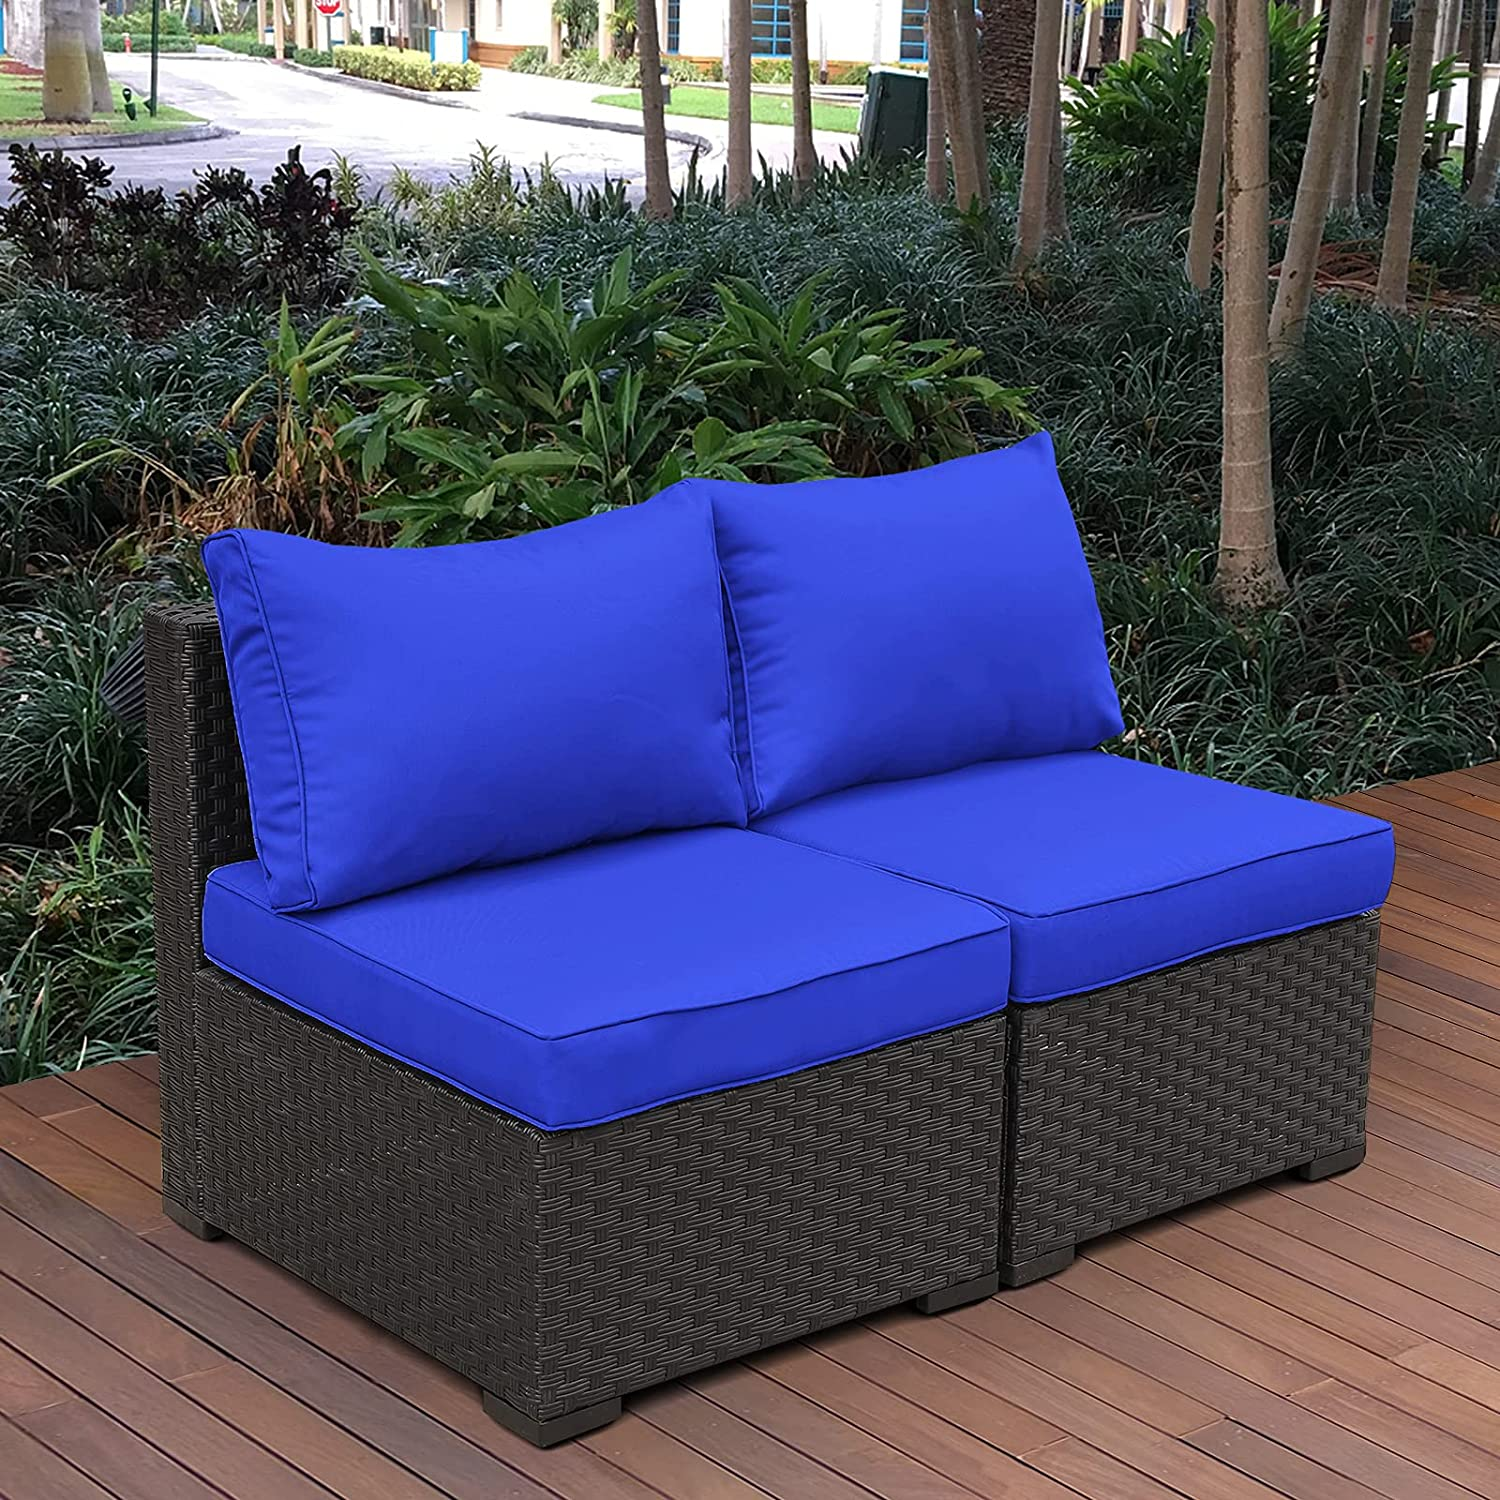 Outdoor Sectional Furniture Set Patio PE Black Wicker Rattan Loveseat Armless Chair Sofa with Cushion (Royal Blue)